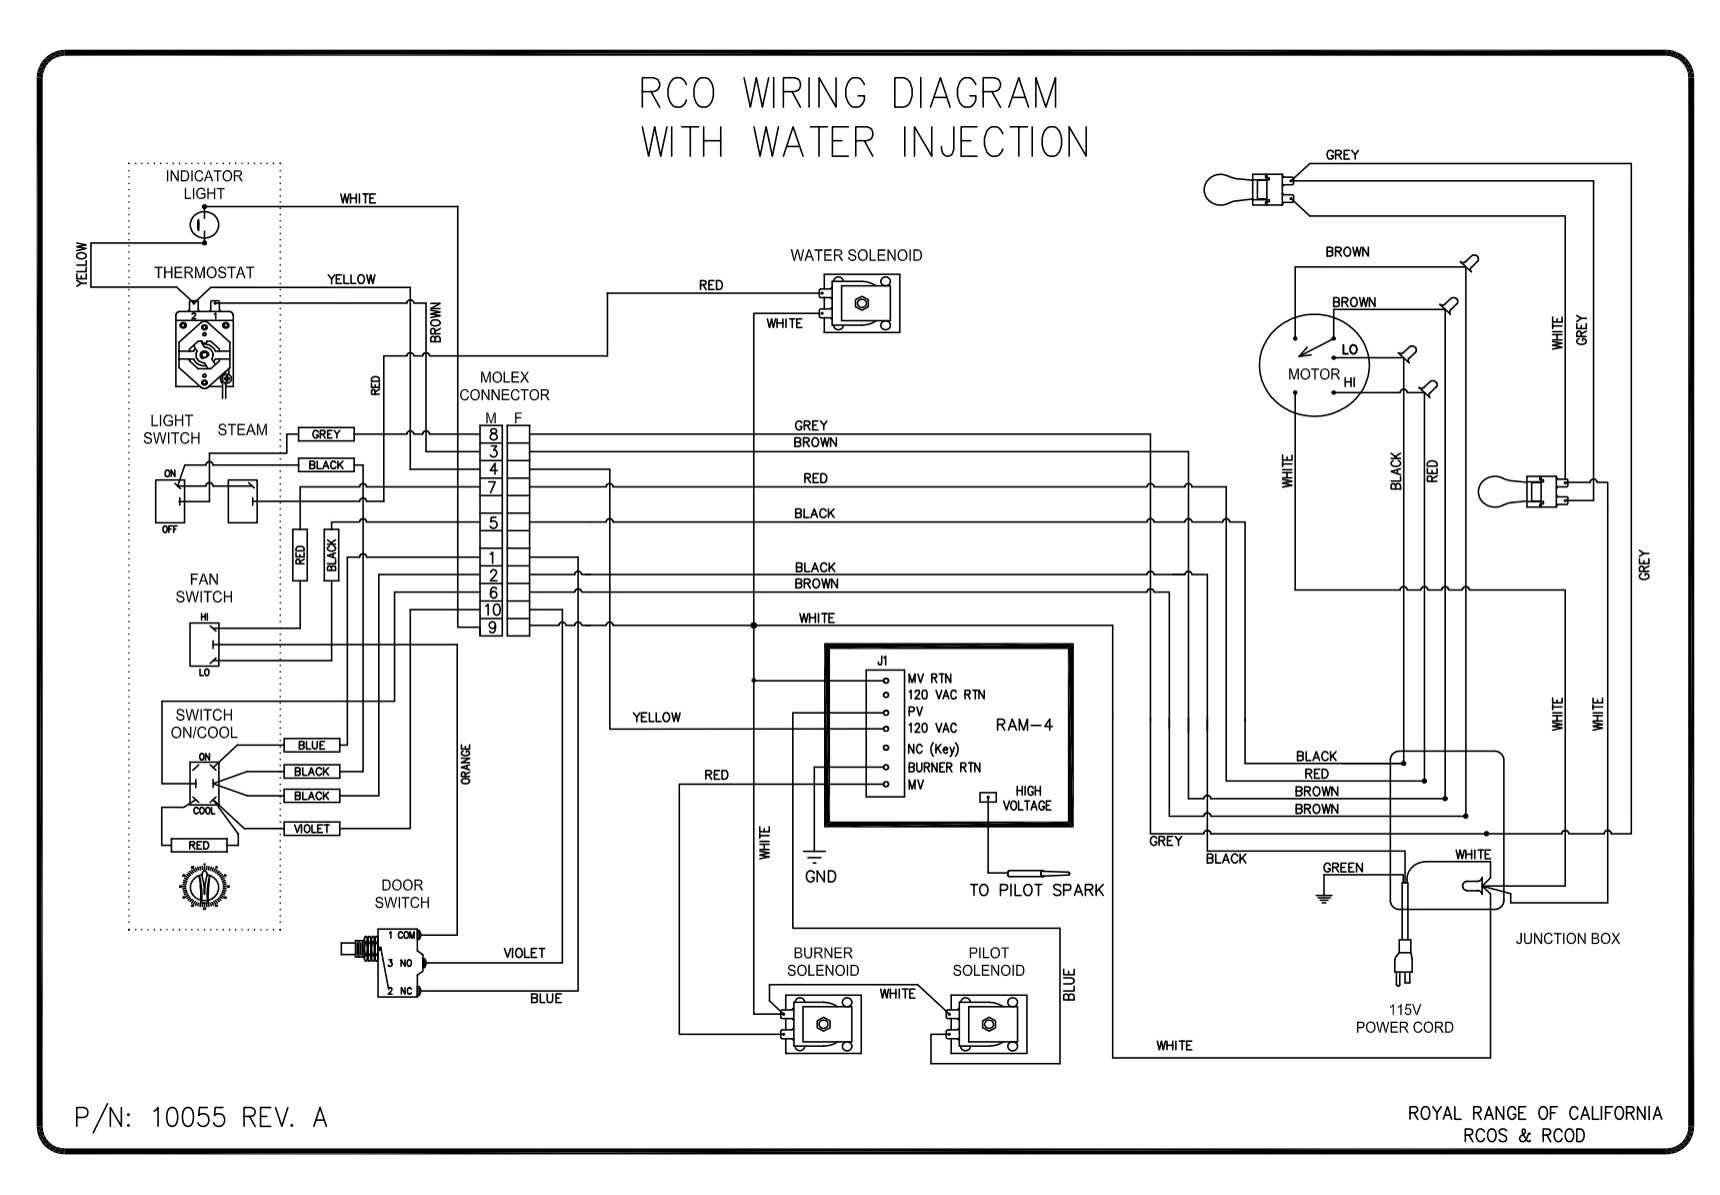 2014 Mercedes Sprinter Fuse Box Diagram Schematic Diagrams 2001 S500 C300 Electrical Wiring 2000